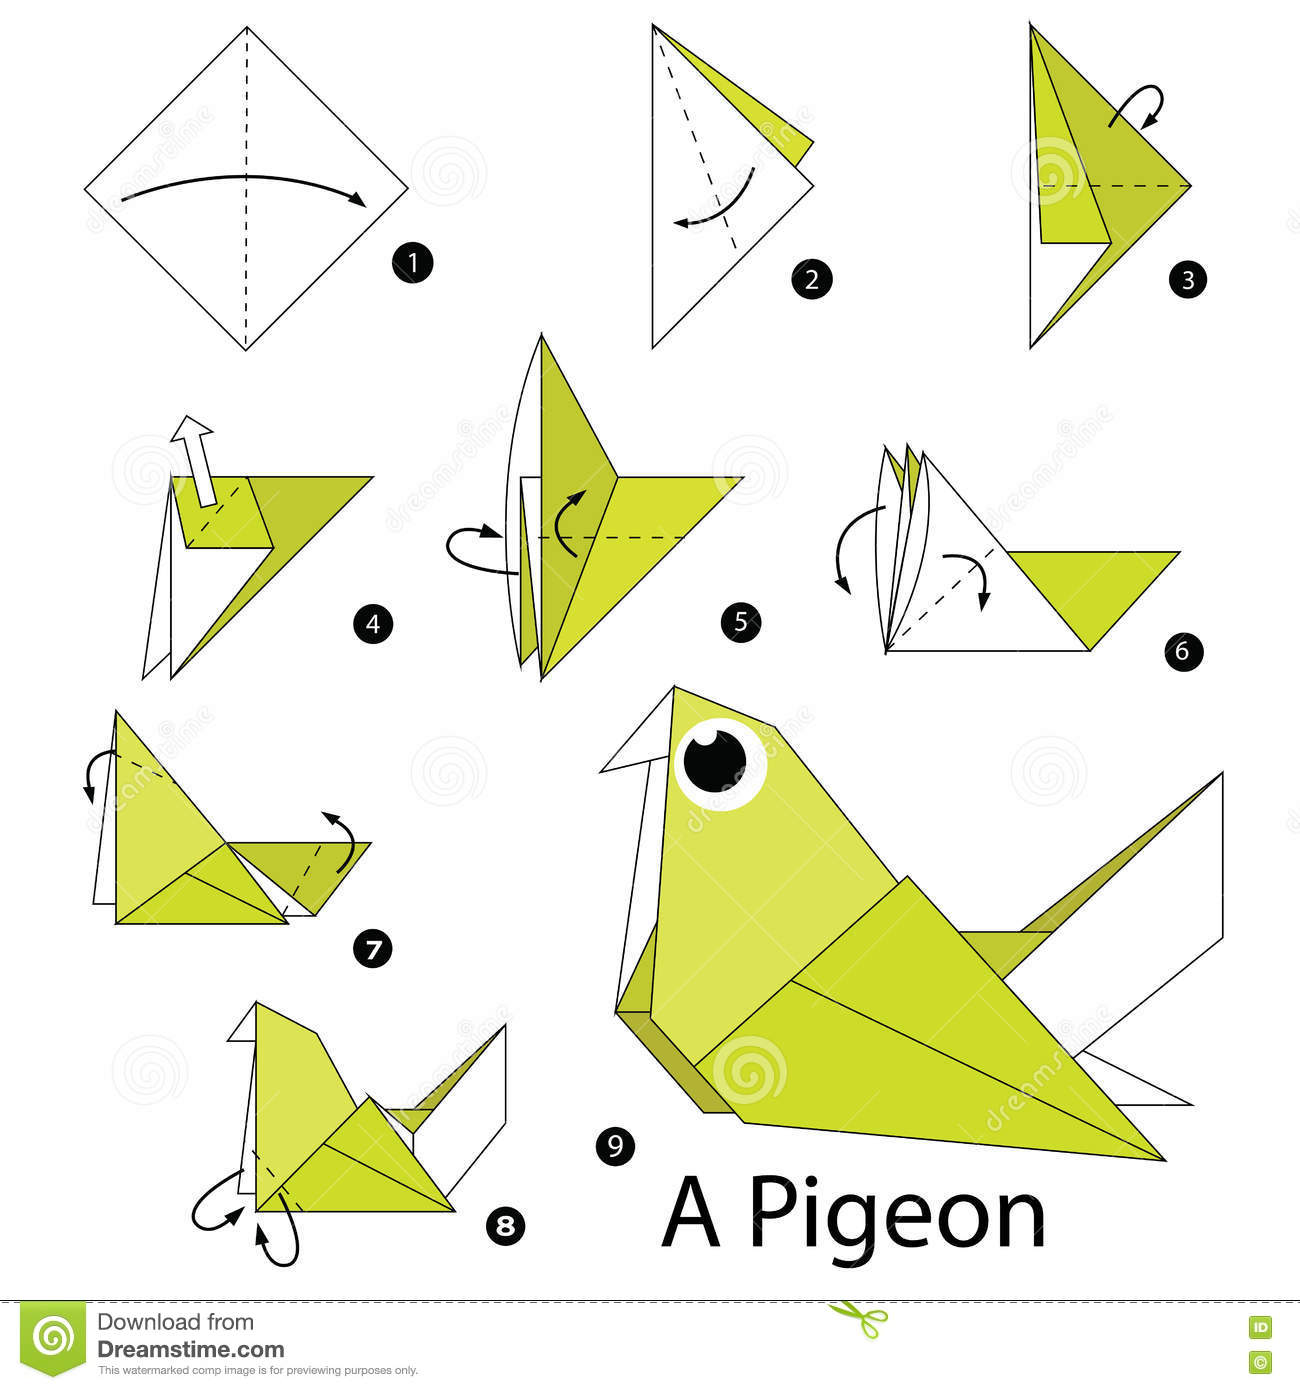 Instructions tape par tape comment faire origami un pigeon illustration de vecteur image - Comment faire fuir les pigeons ...